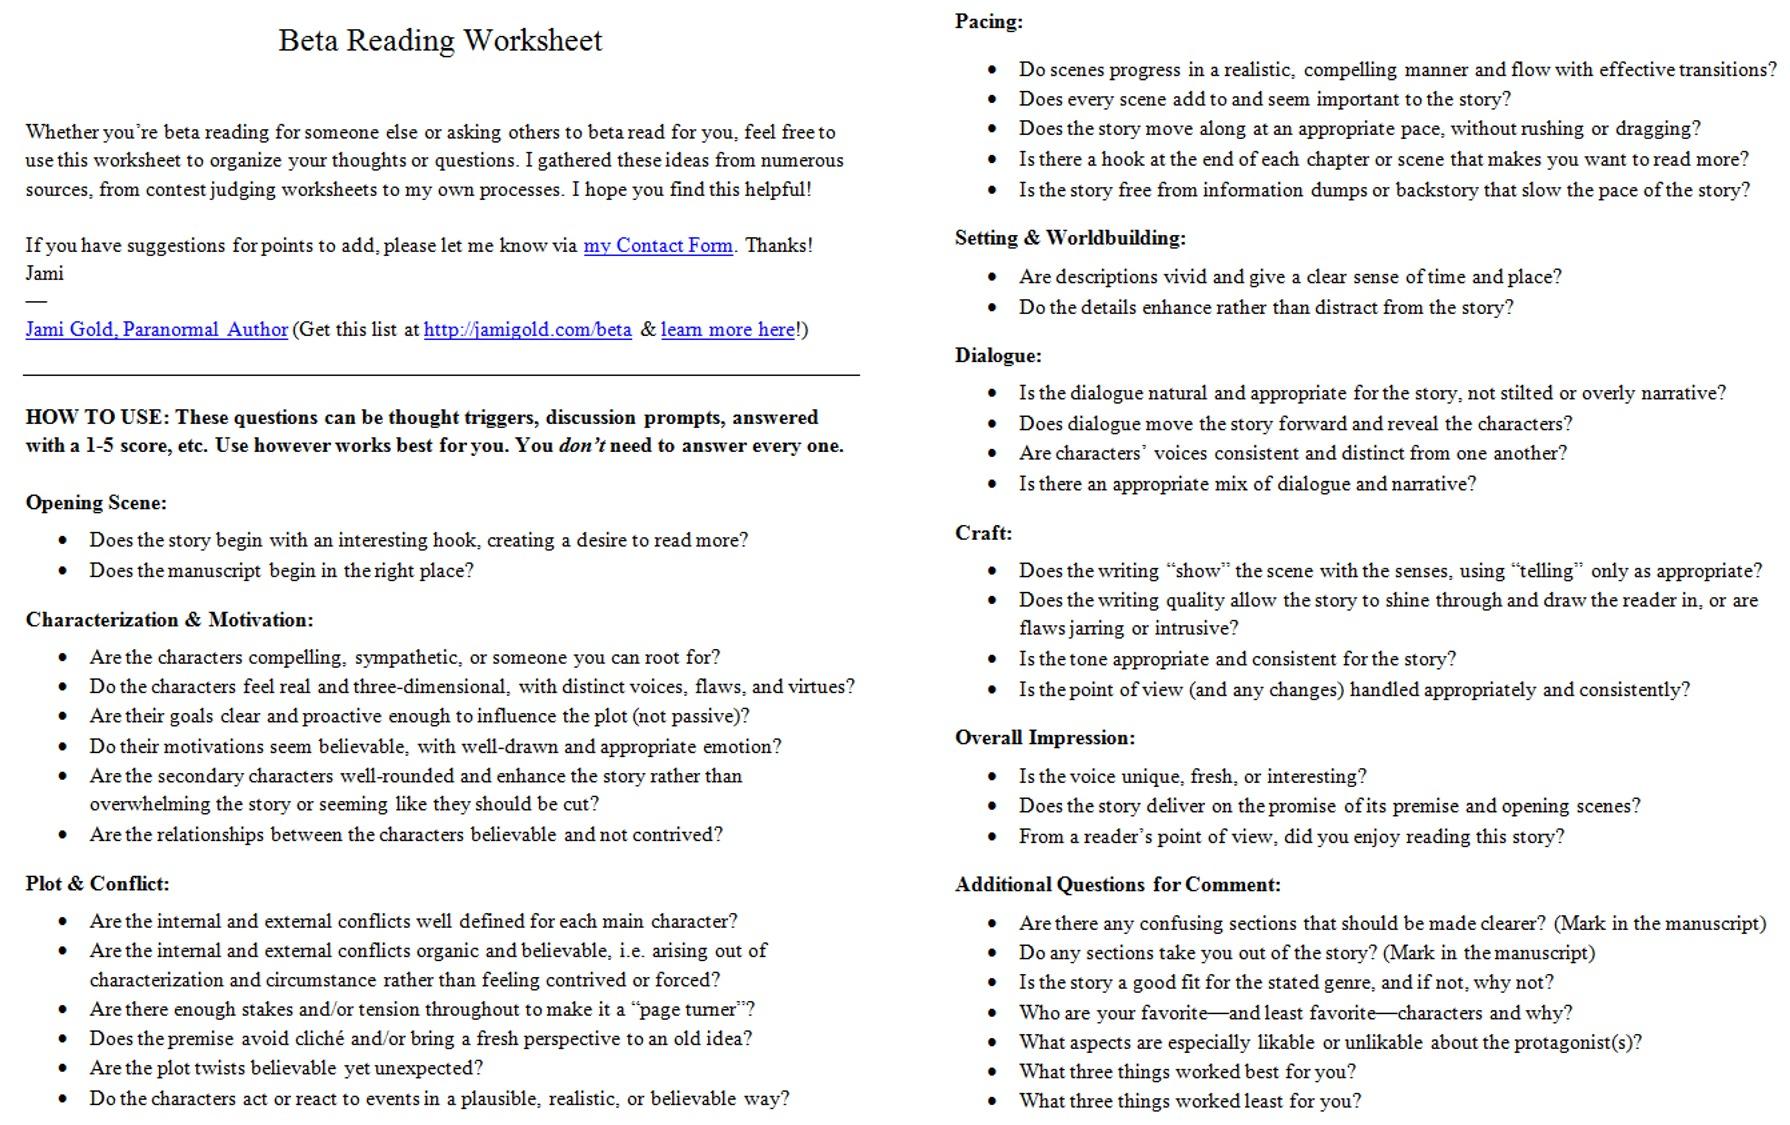 Weirdmailus  Pleasing Worksheets For Writers  Jami Gold Paranormal Author With Hot Screen Shot Of The Twopage Beta Reading Worksheet With Alluring Perimeter Worksheets Grade  Also D Nealian Alphabet Worksheets In Addition A An The Worksheets For Grade  And Creative Writing Worksheets For Grade  As Well As Worksheet Of Noun Additionally Six Figure Grid References Worksheet From Jamigoldcom With Weirdmailus  Hot Worksheets For Writers  Jami Gold Paranormal Author With Alluring Screen Shot Of The Twopage Beta Reading Worksheet And Pleasing Perimeter Worksheets Grade  Also D Nealian Alphabet Worksheets In Addition A An The Worksheets For Grade  From Jamigoldcom